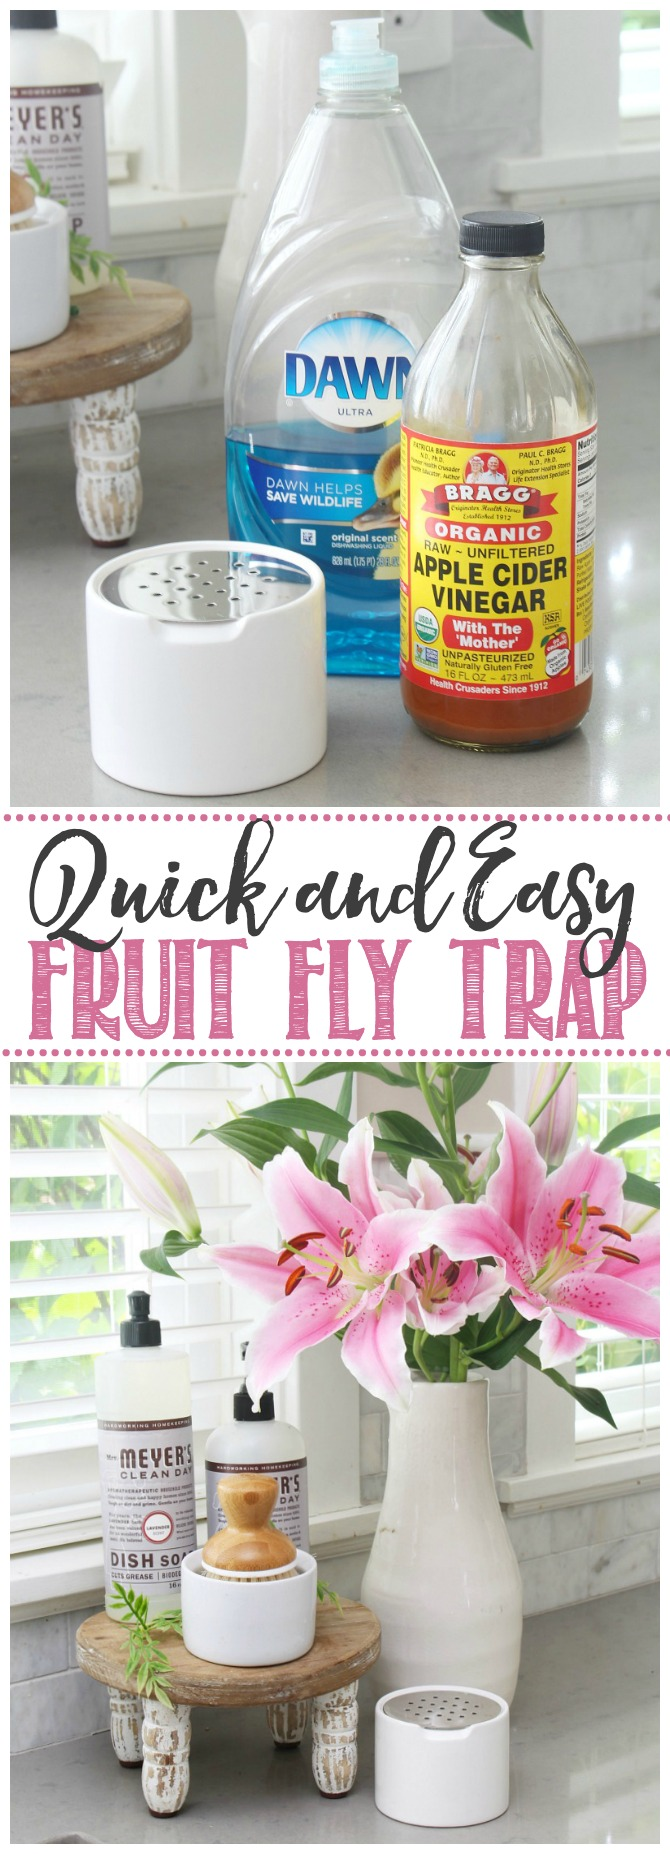 How to Get Rid of Fruit Flies Clean and Scentsible in